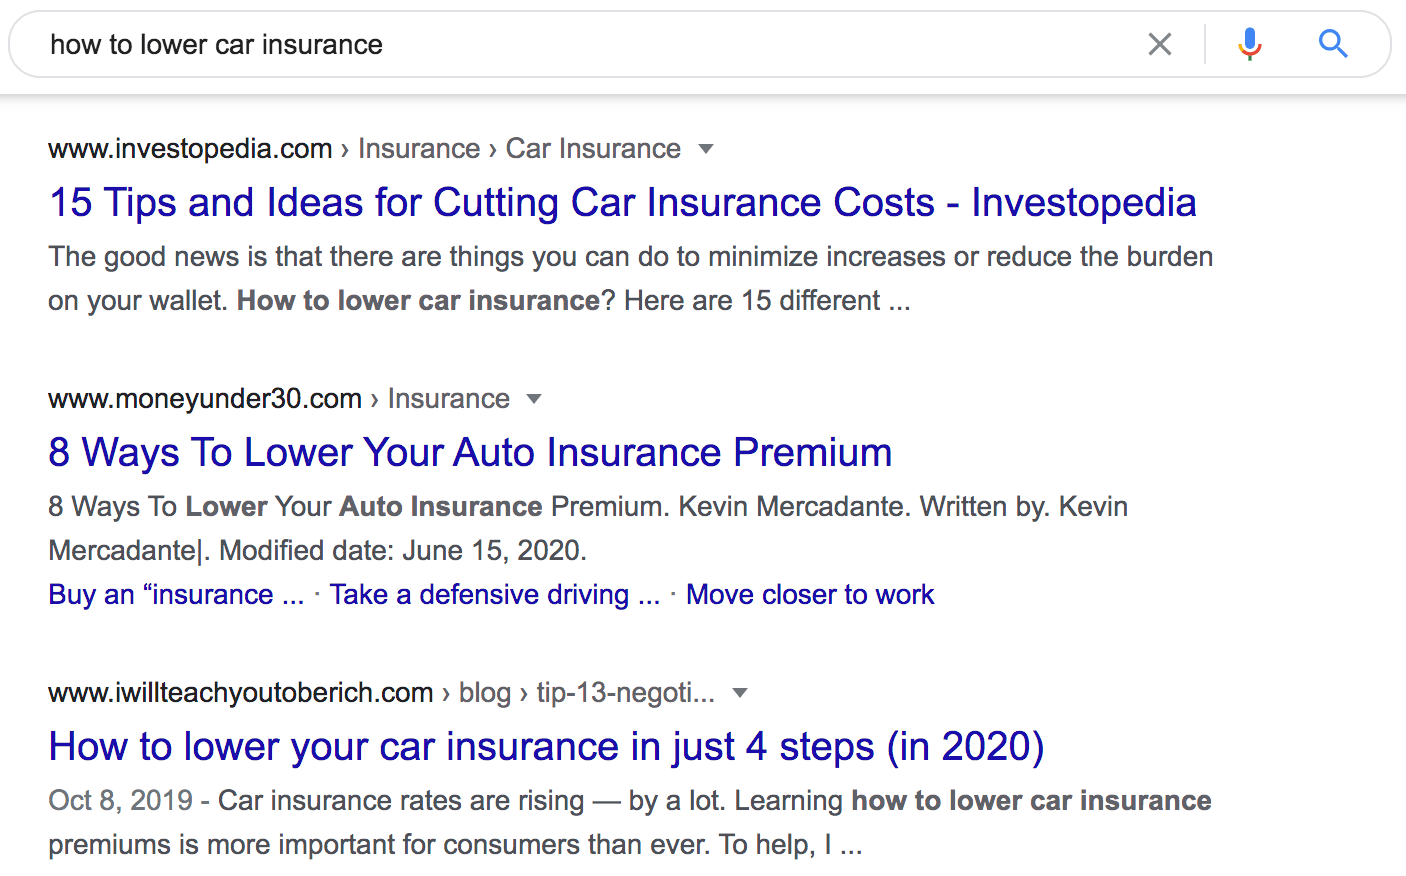 how to lower car insurance serps